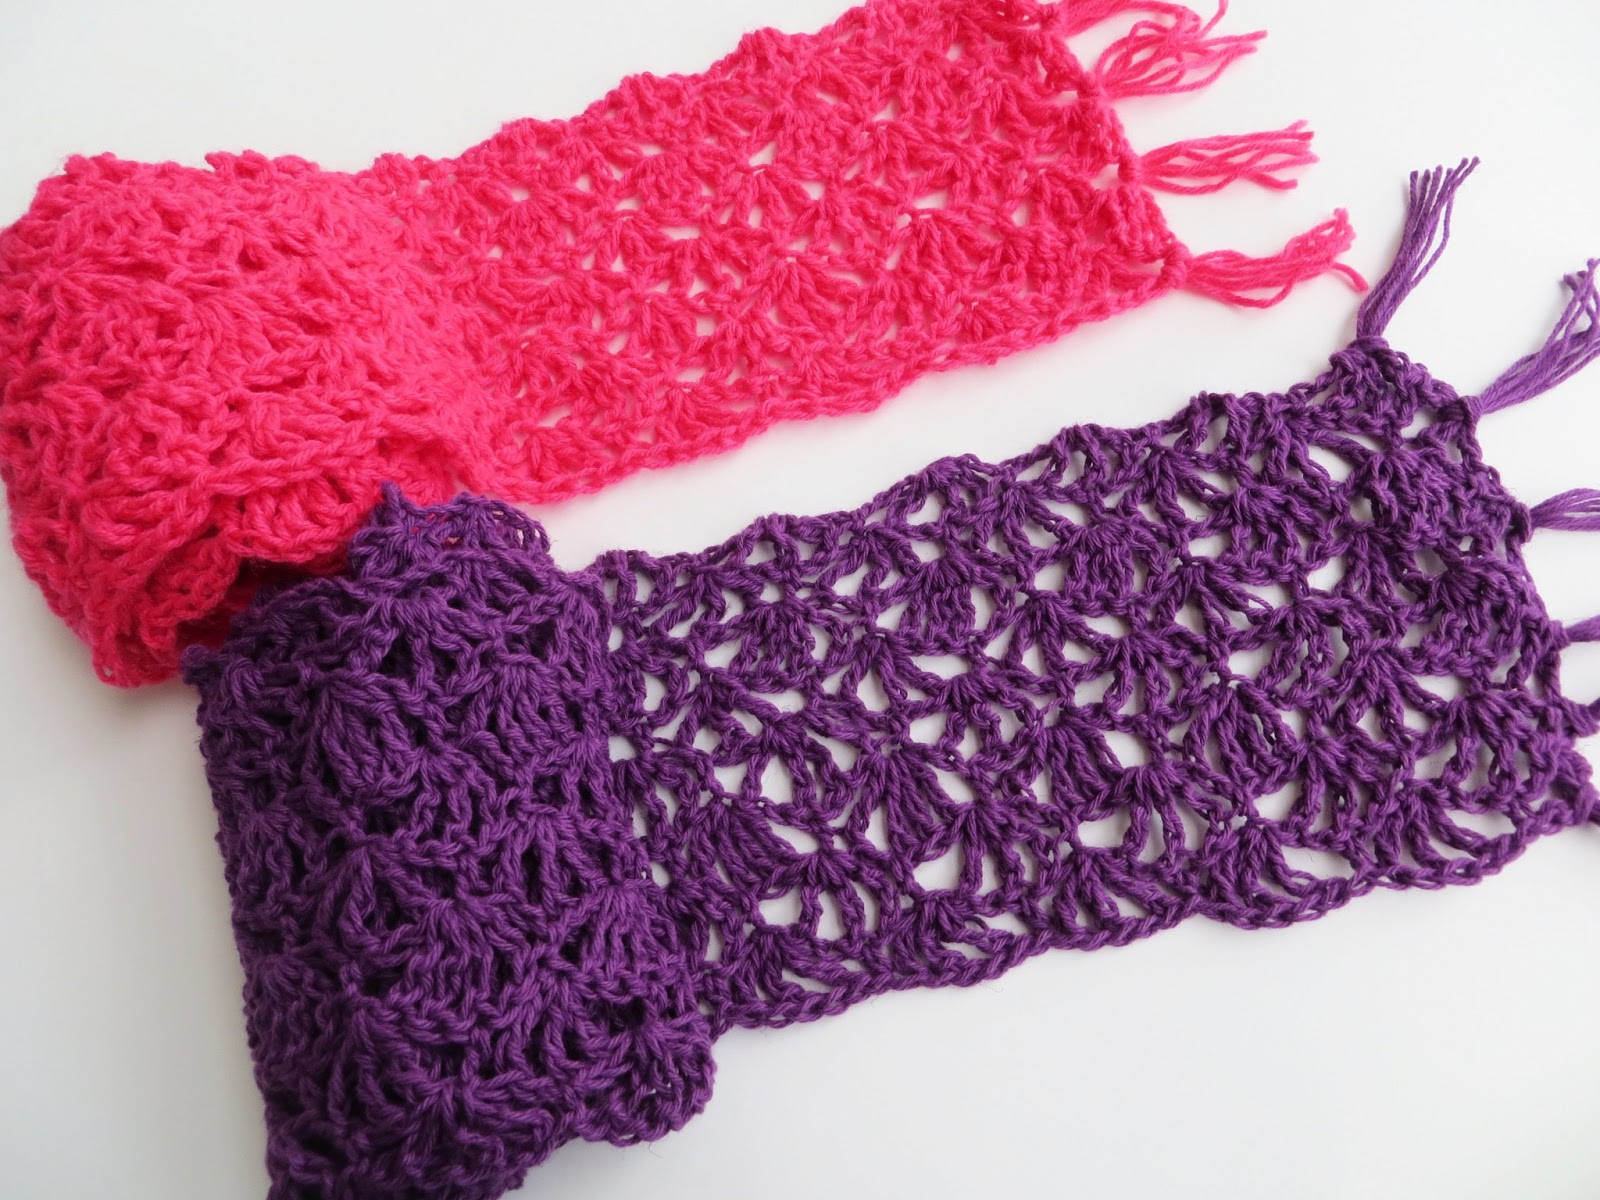 Free Crochet Patterns For Lightweight Scarves : Crochet Scarves, Wrap-arounds on Pinterest Crochet Scarf ...